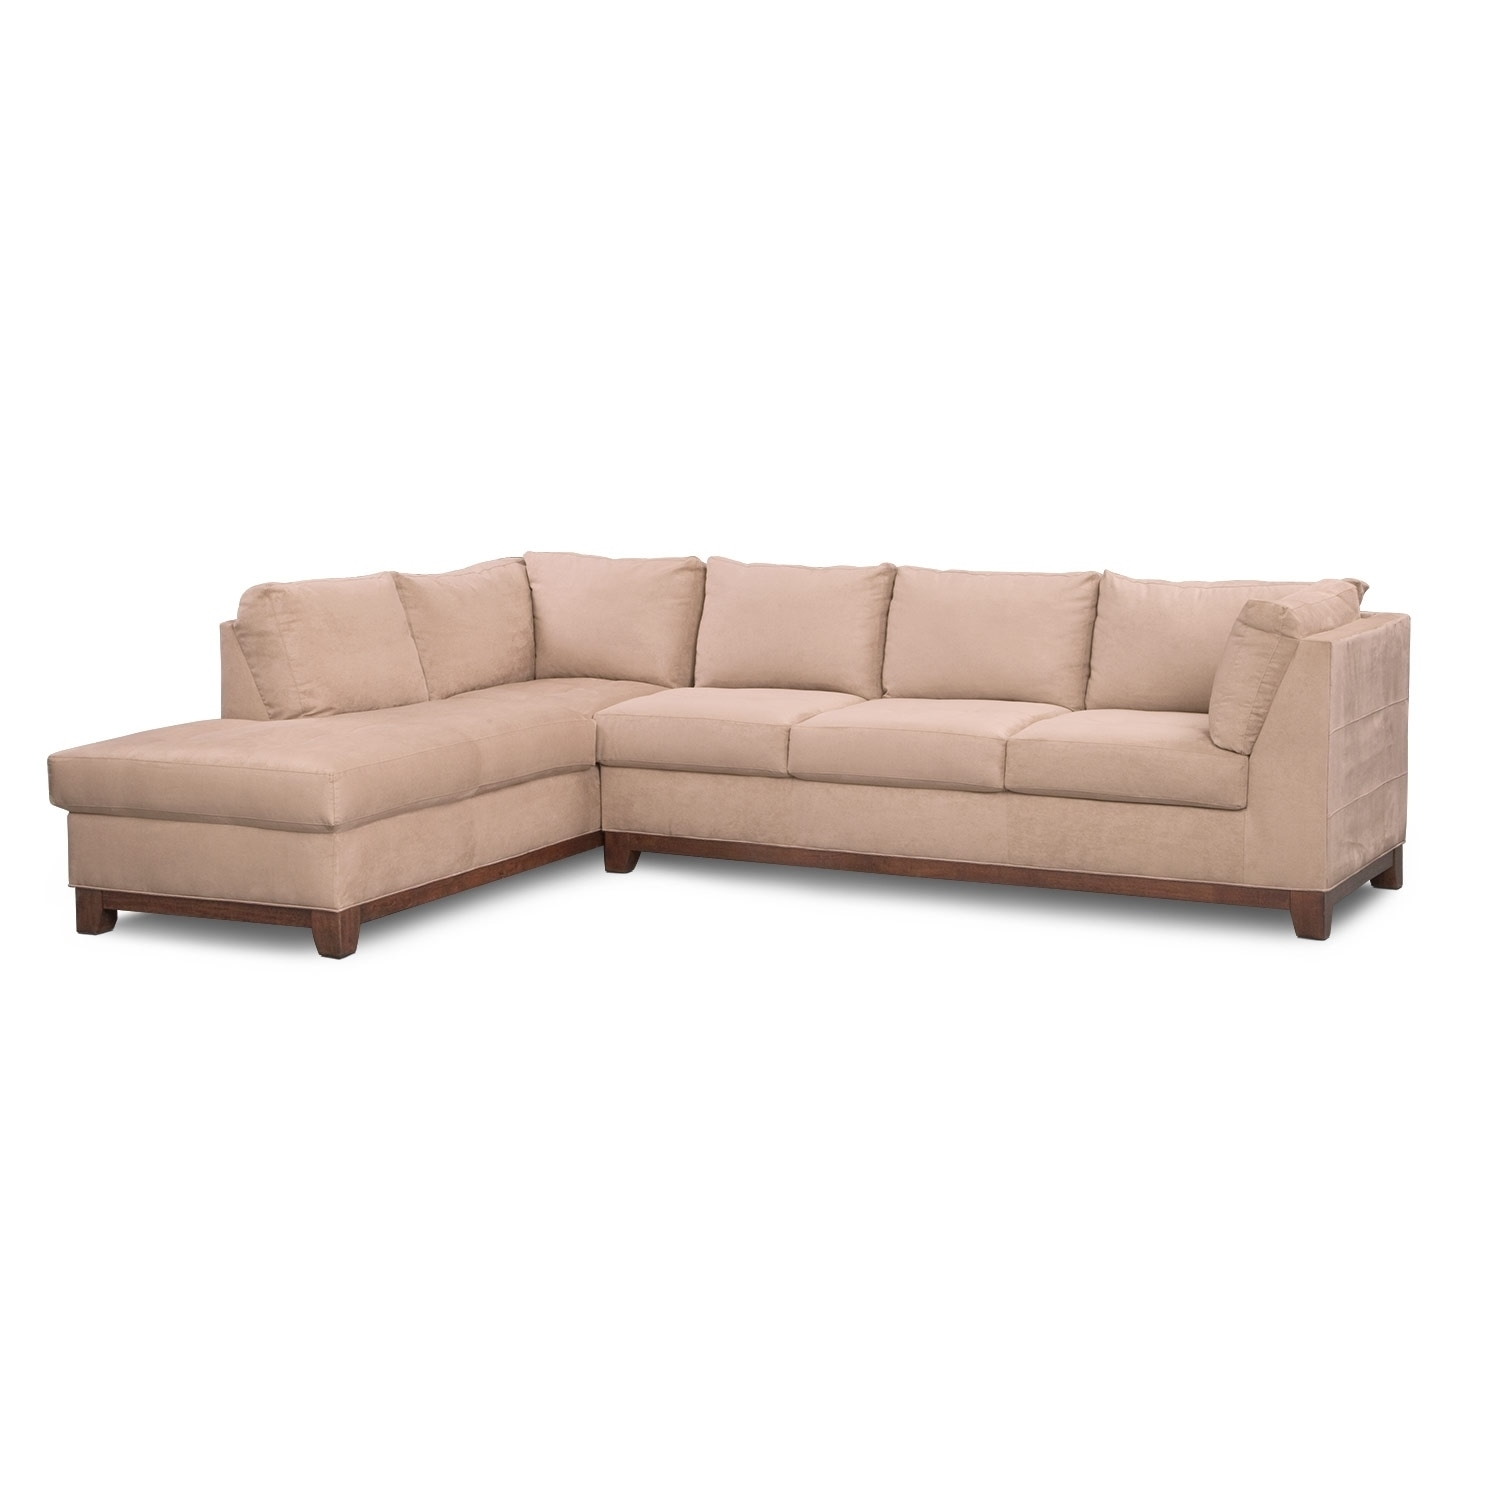 Soho 2-Piece Sectional With Left-Facing Chaise - Cobblestone | Value pertaining to Arrowmask 2 Piece Sectionals With Sleeper & Right Facing Chaise (Image 27 of 30)